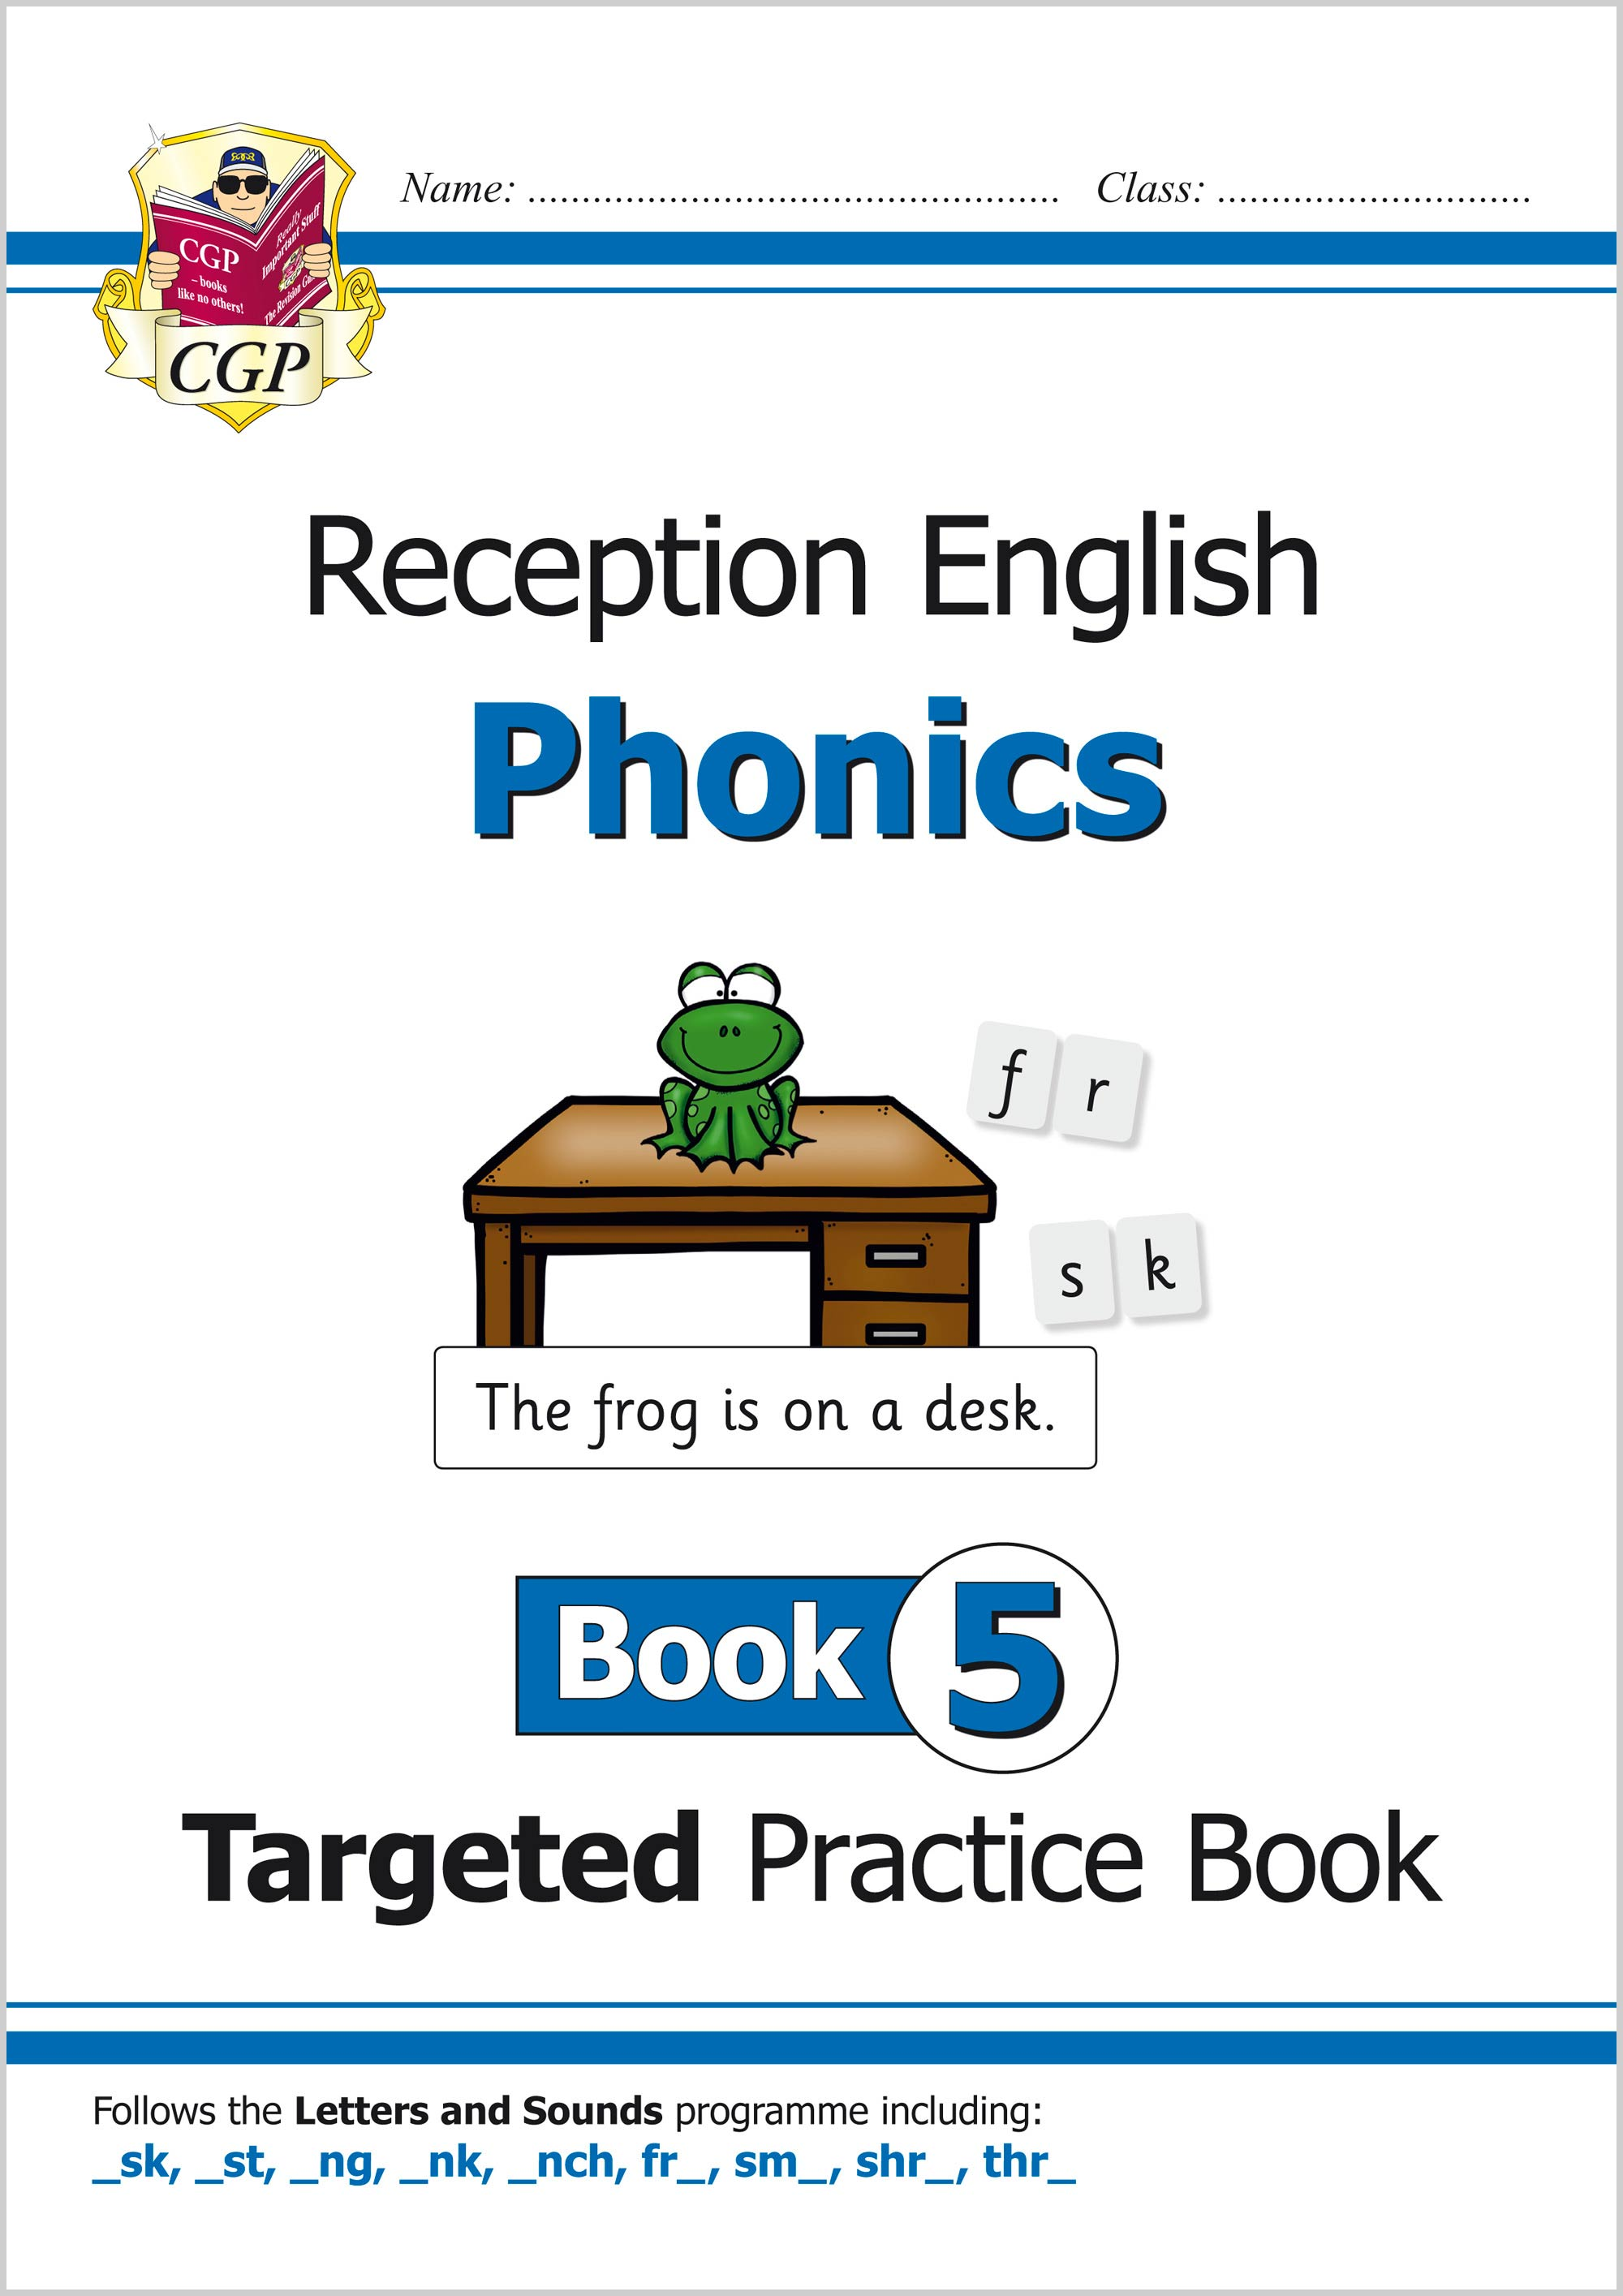 EROW511 - New English Targeted Practice Book: Phonics - Reception Book 5